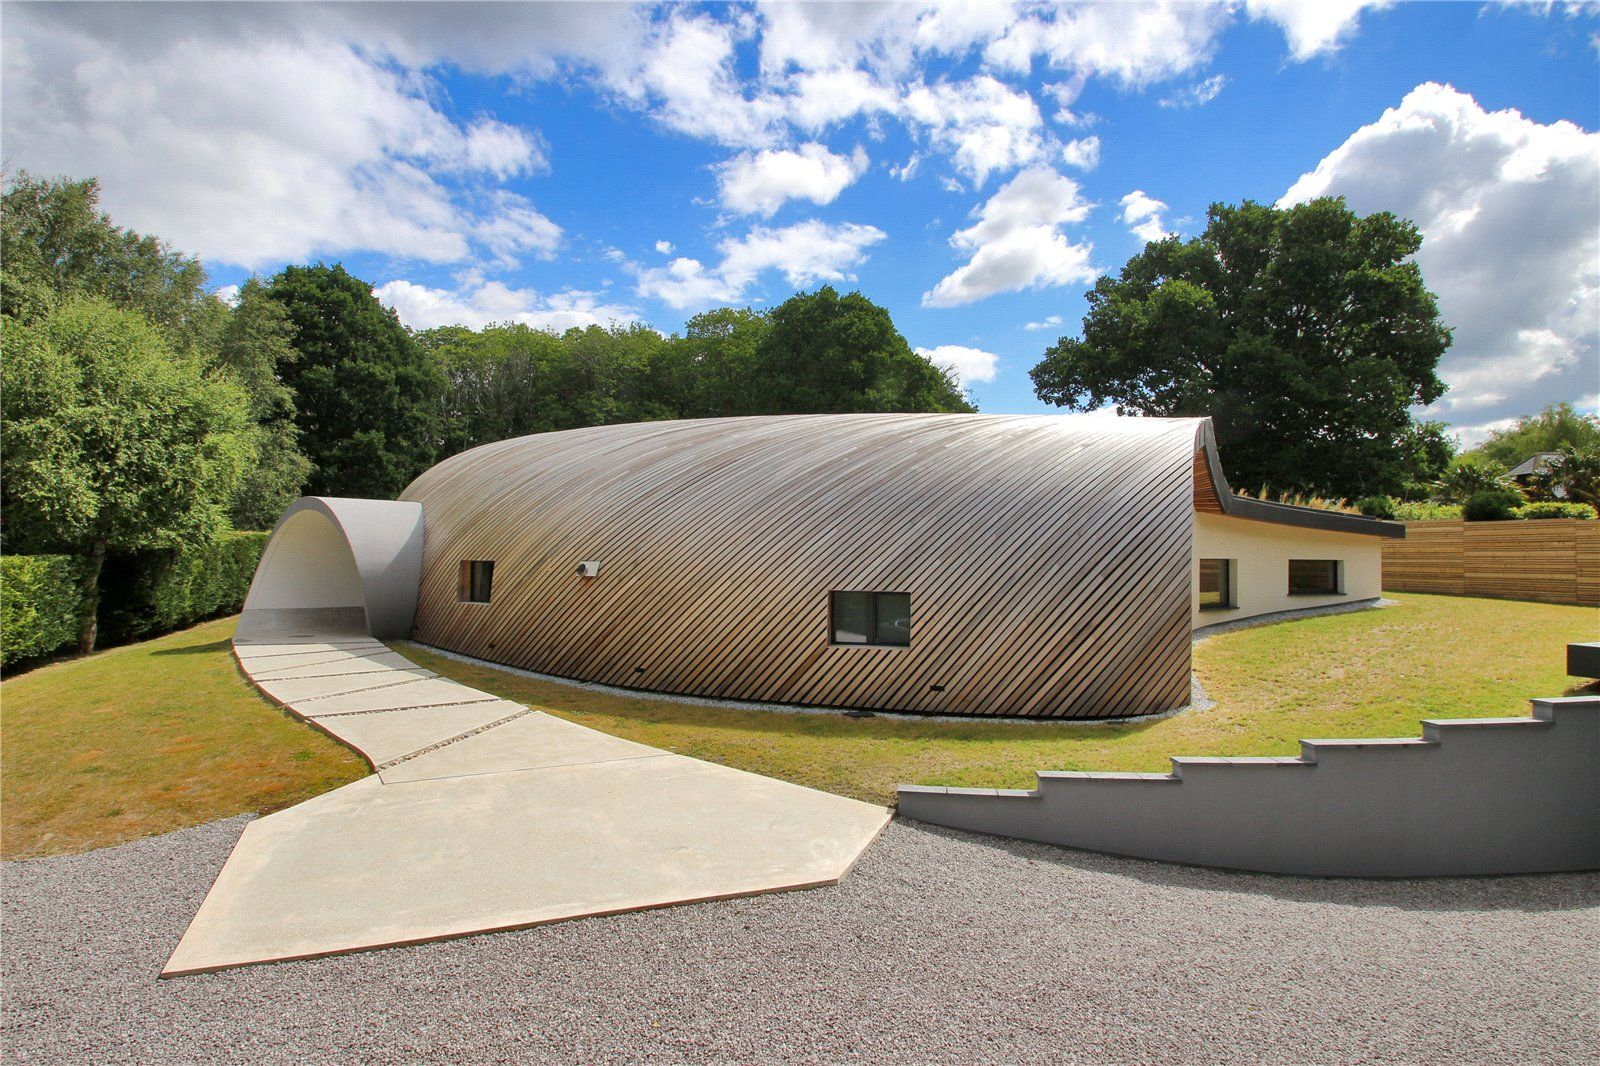 Peek inside this contemporary curved house in West Sussex